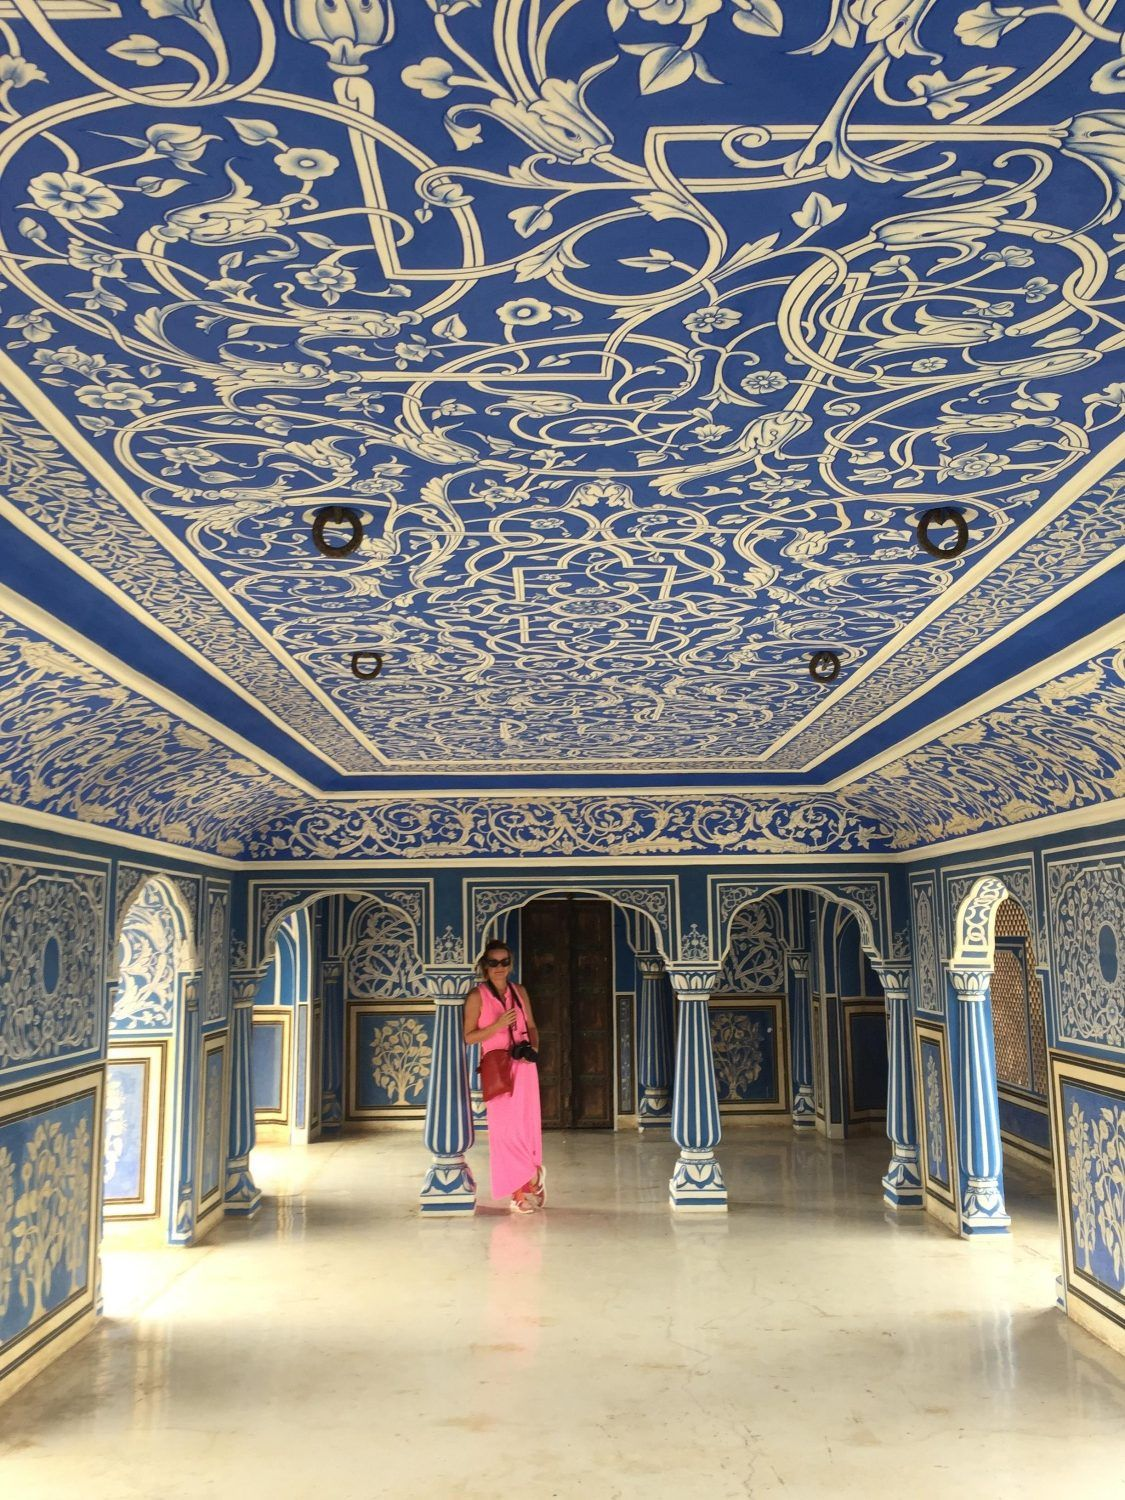 The Blue Room City Palace Jaipur City Palace Jaipur Jaipur Jaipur India